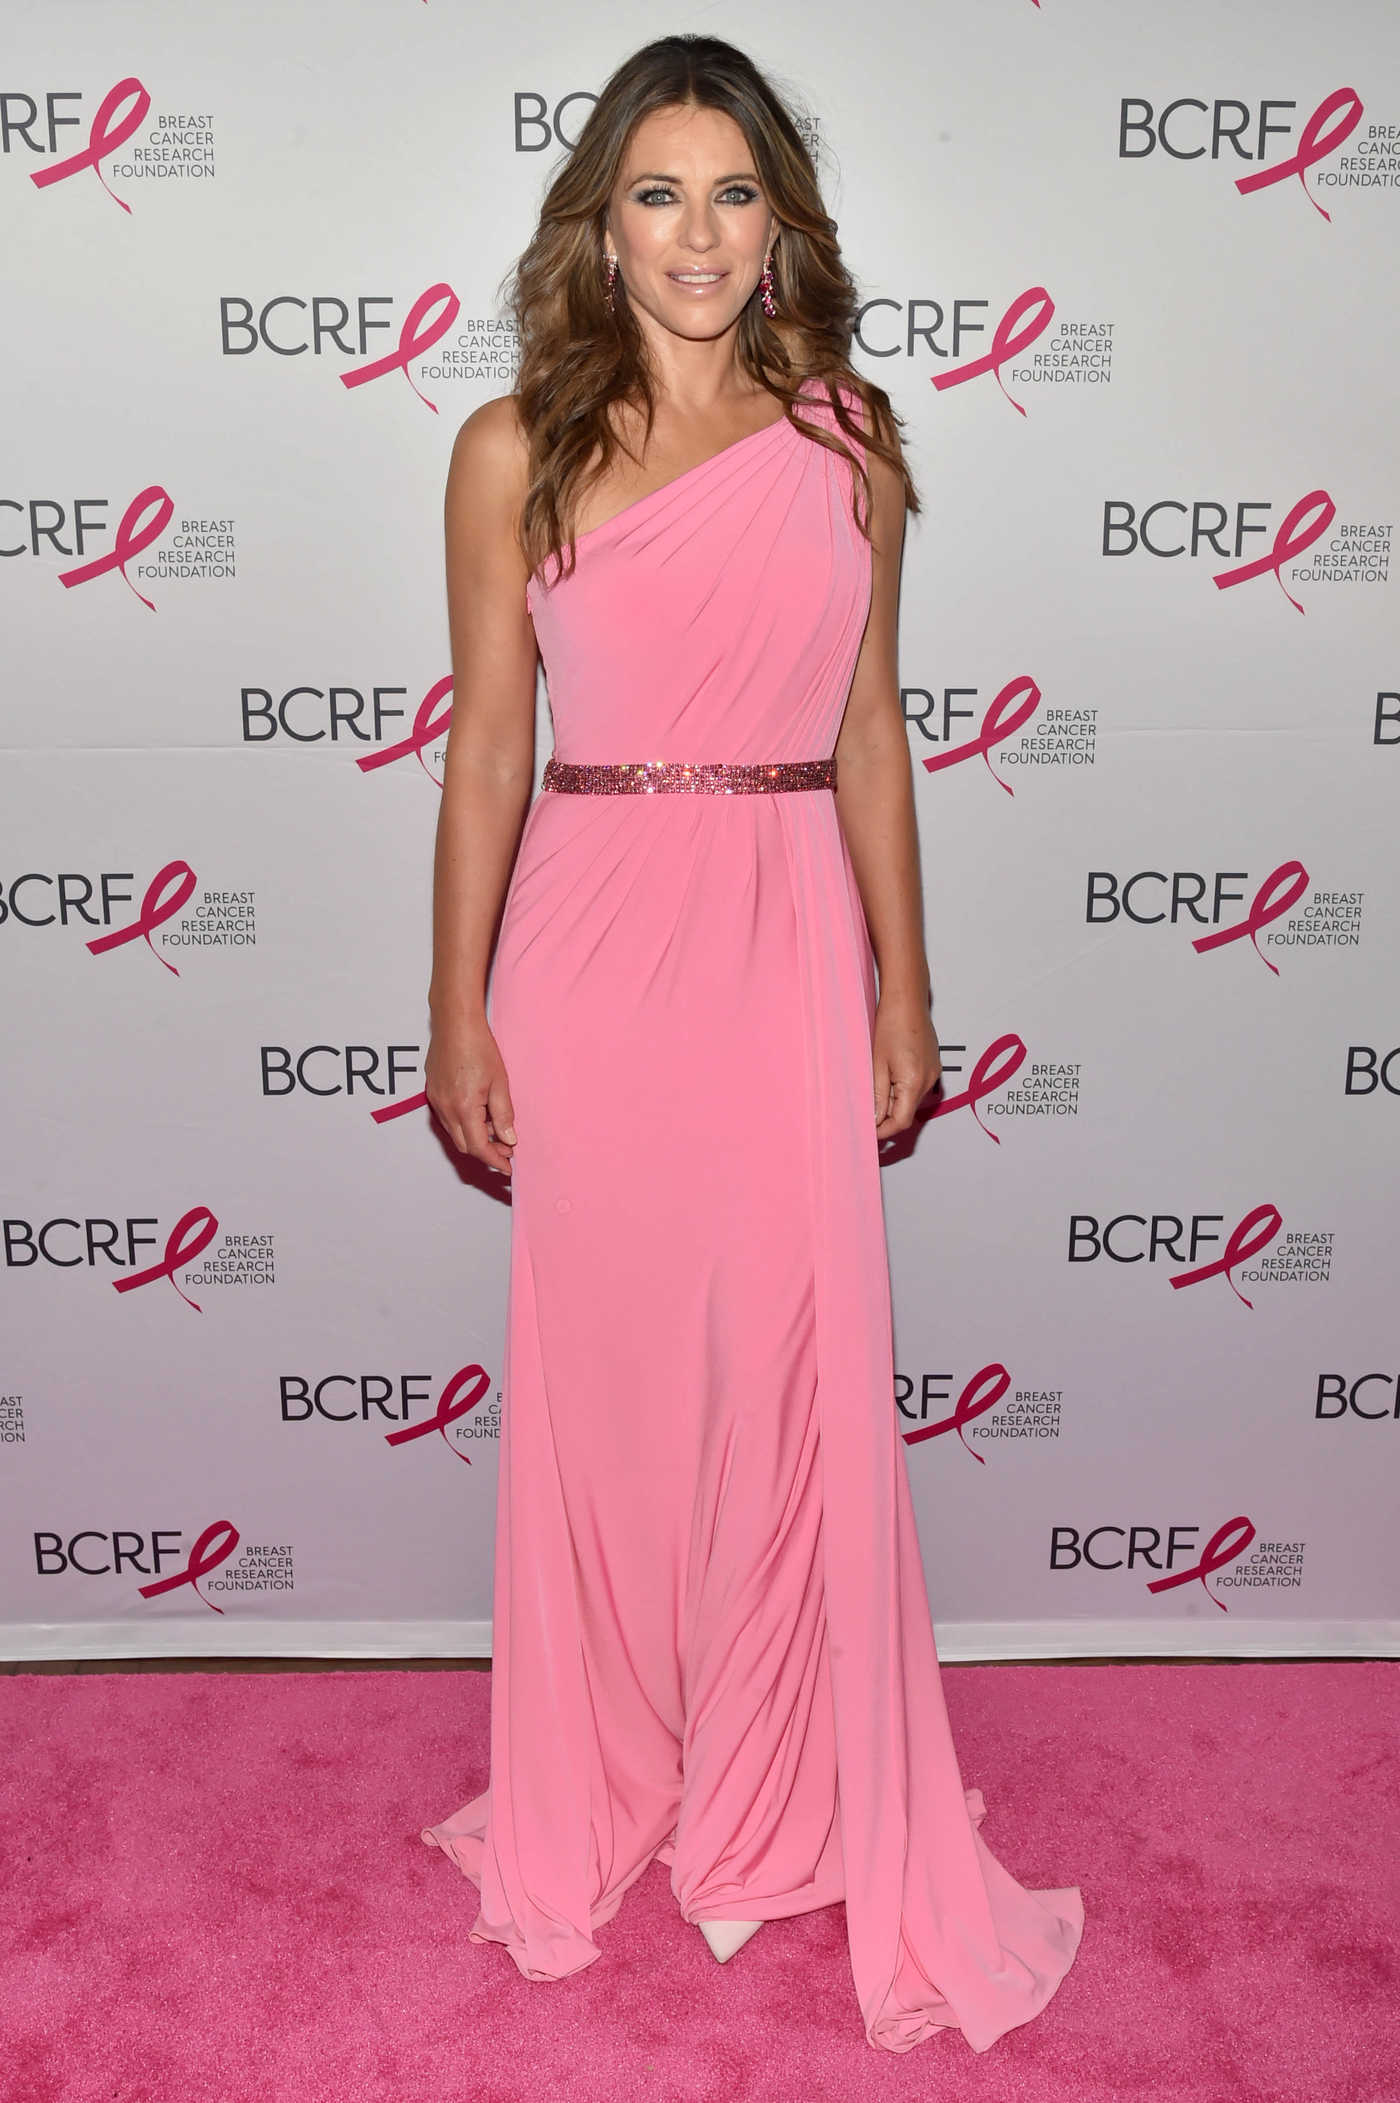 Elizabeth Hurley at the Breast Cancer Research Foundation's Annual Hot Pink Party in New York 05/12/2017